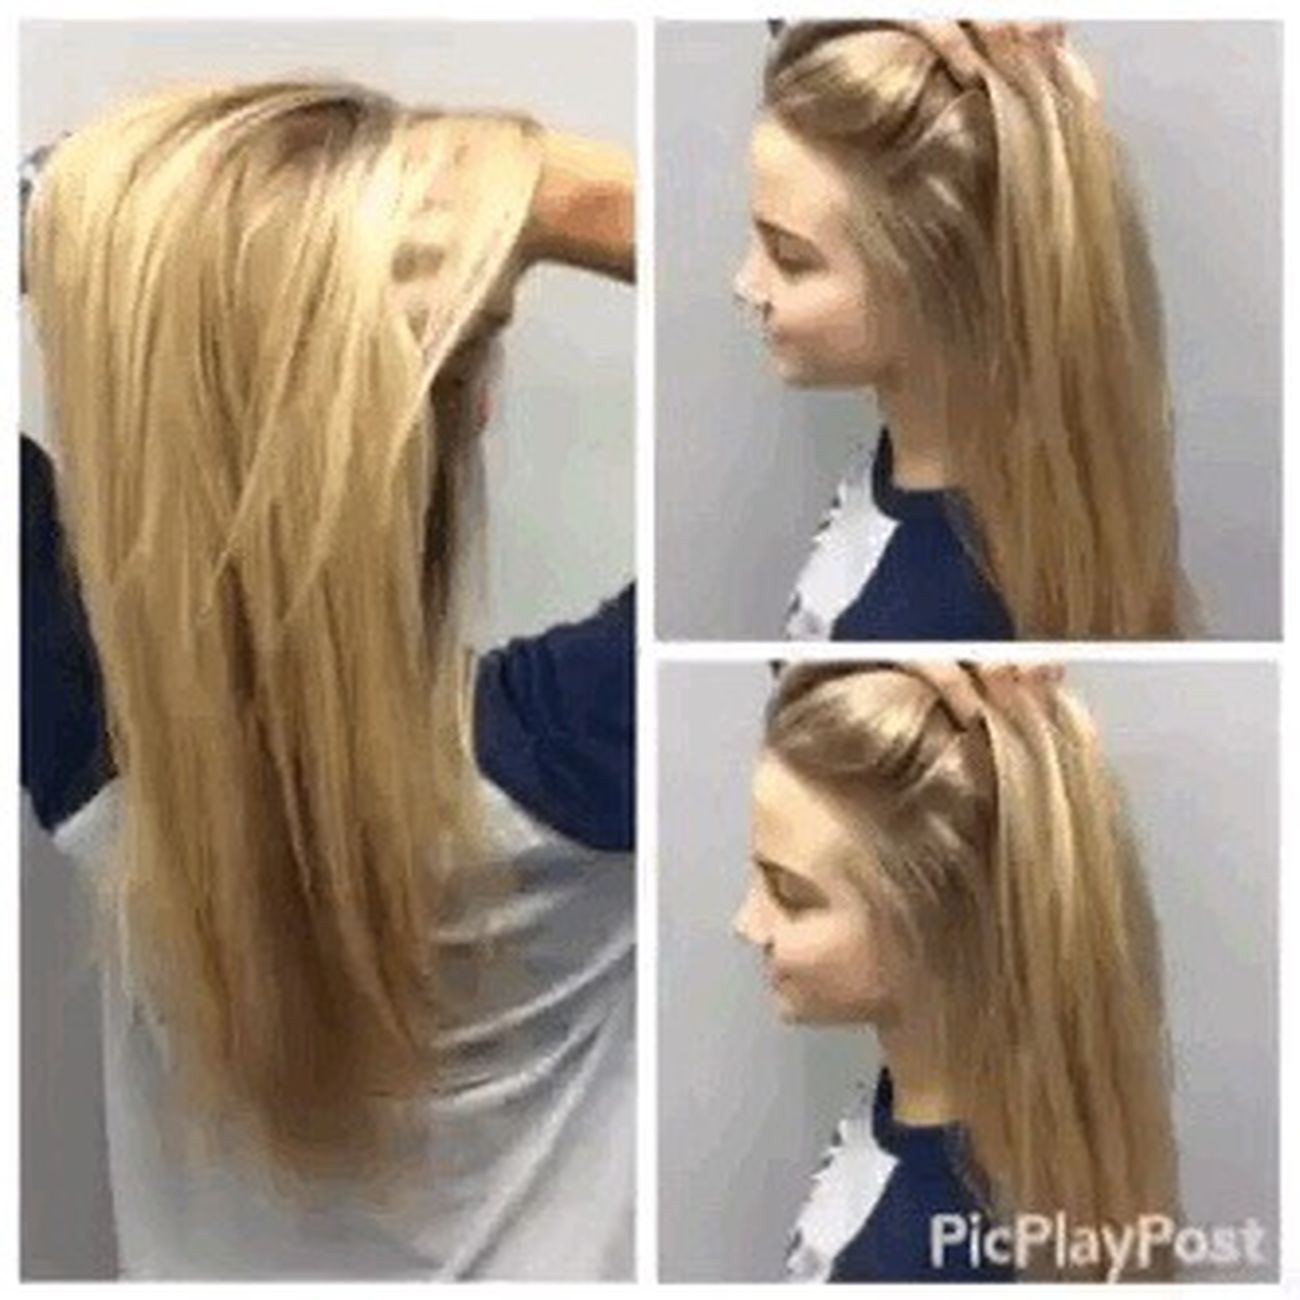 Hair Painted Blonde Balayage @znevaehsalon @lorealprous Check This Out Saloneducation Salonlife Long Hair Highligting And Contouring Hairtrends Pro Fiber Fashion #style #stylish #love #TagsForLikes #me #cute #photooftheday #nails #hair #beauty #beautiful #instagood #instafashion # Balayage Haircolor Teamznevaeh @znevaehsalon Color Specialist Fashion Hair Hair Hairstyle Lorealprofessionnelsalon Z Nevaeh Salon Knoxville Salon Knoxvillesalon Eye4photography # Photooftheday Lorealprous Tecni.art Glamour Blonde Blonde Baby Lights @znevaehsalon @lorealprous